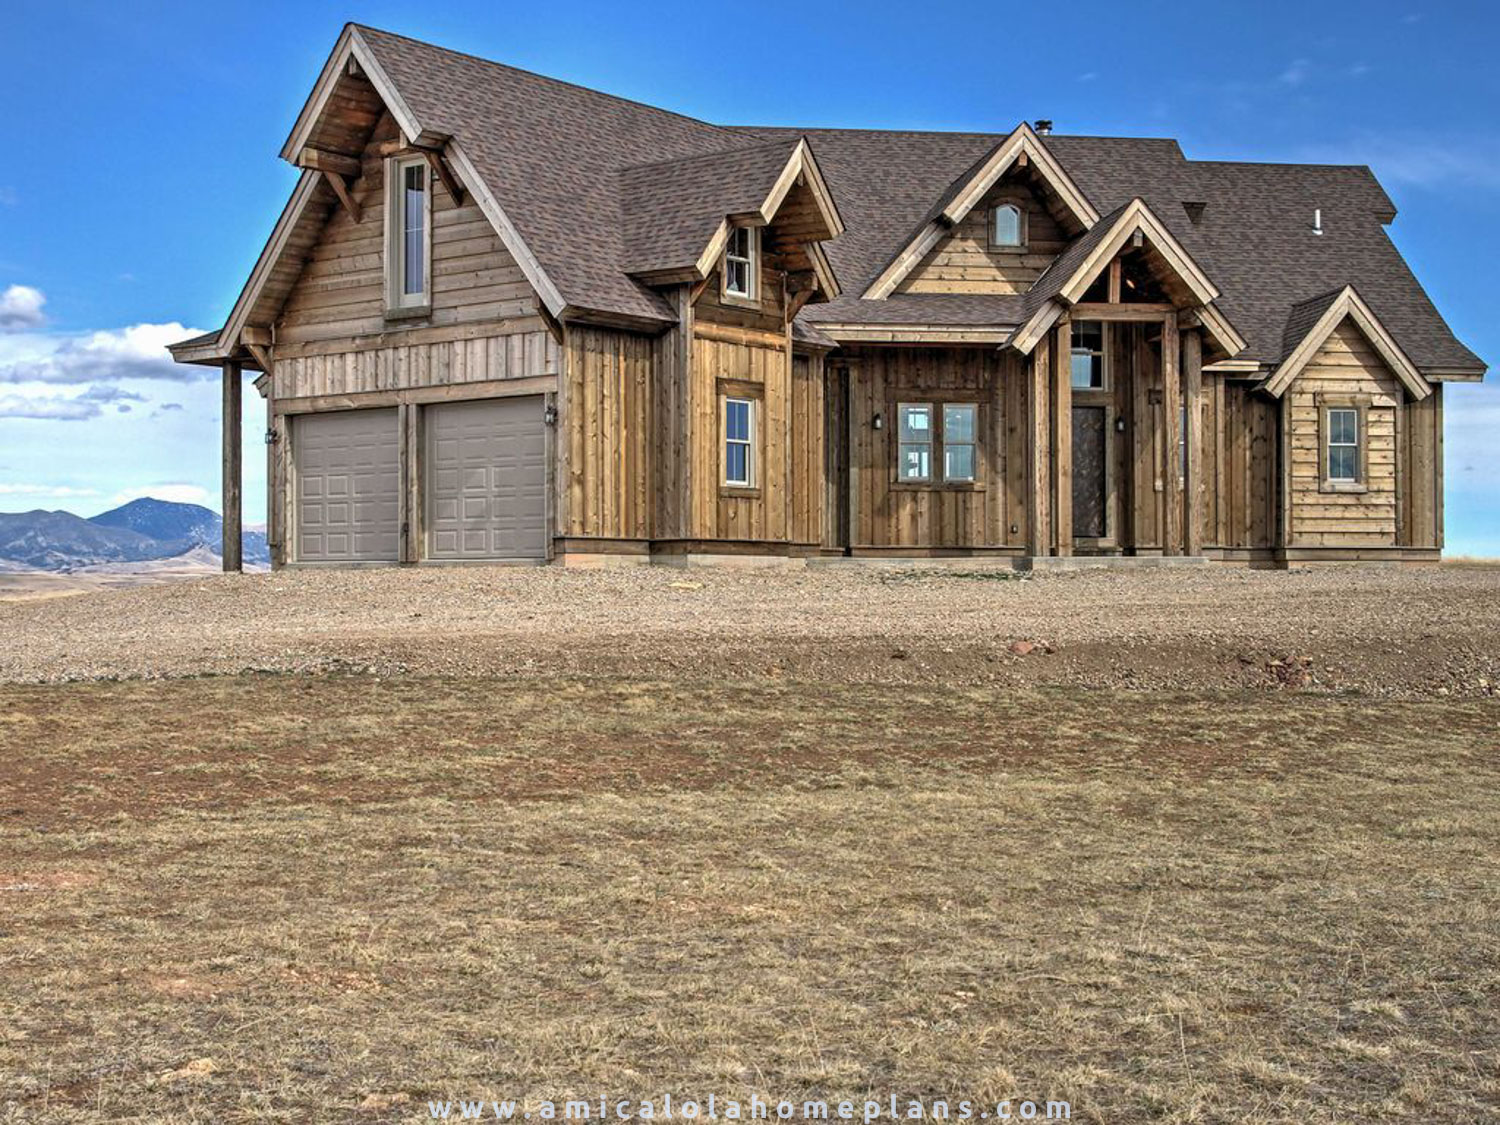 Skwalker Ranch Floor Plan by Klippel Residential Design Front Elevation-2.jpg